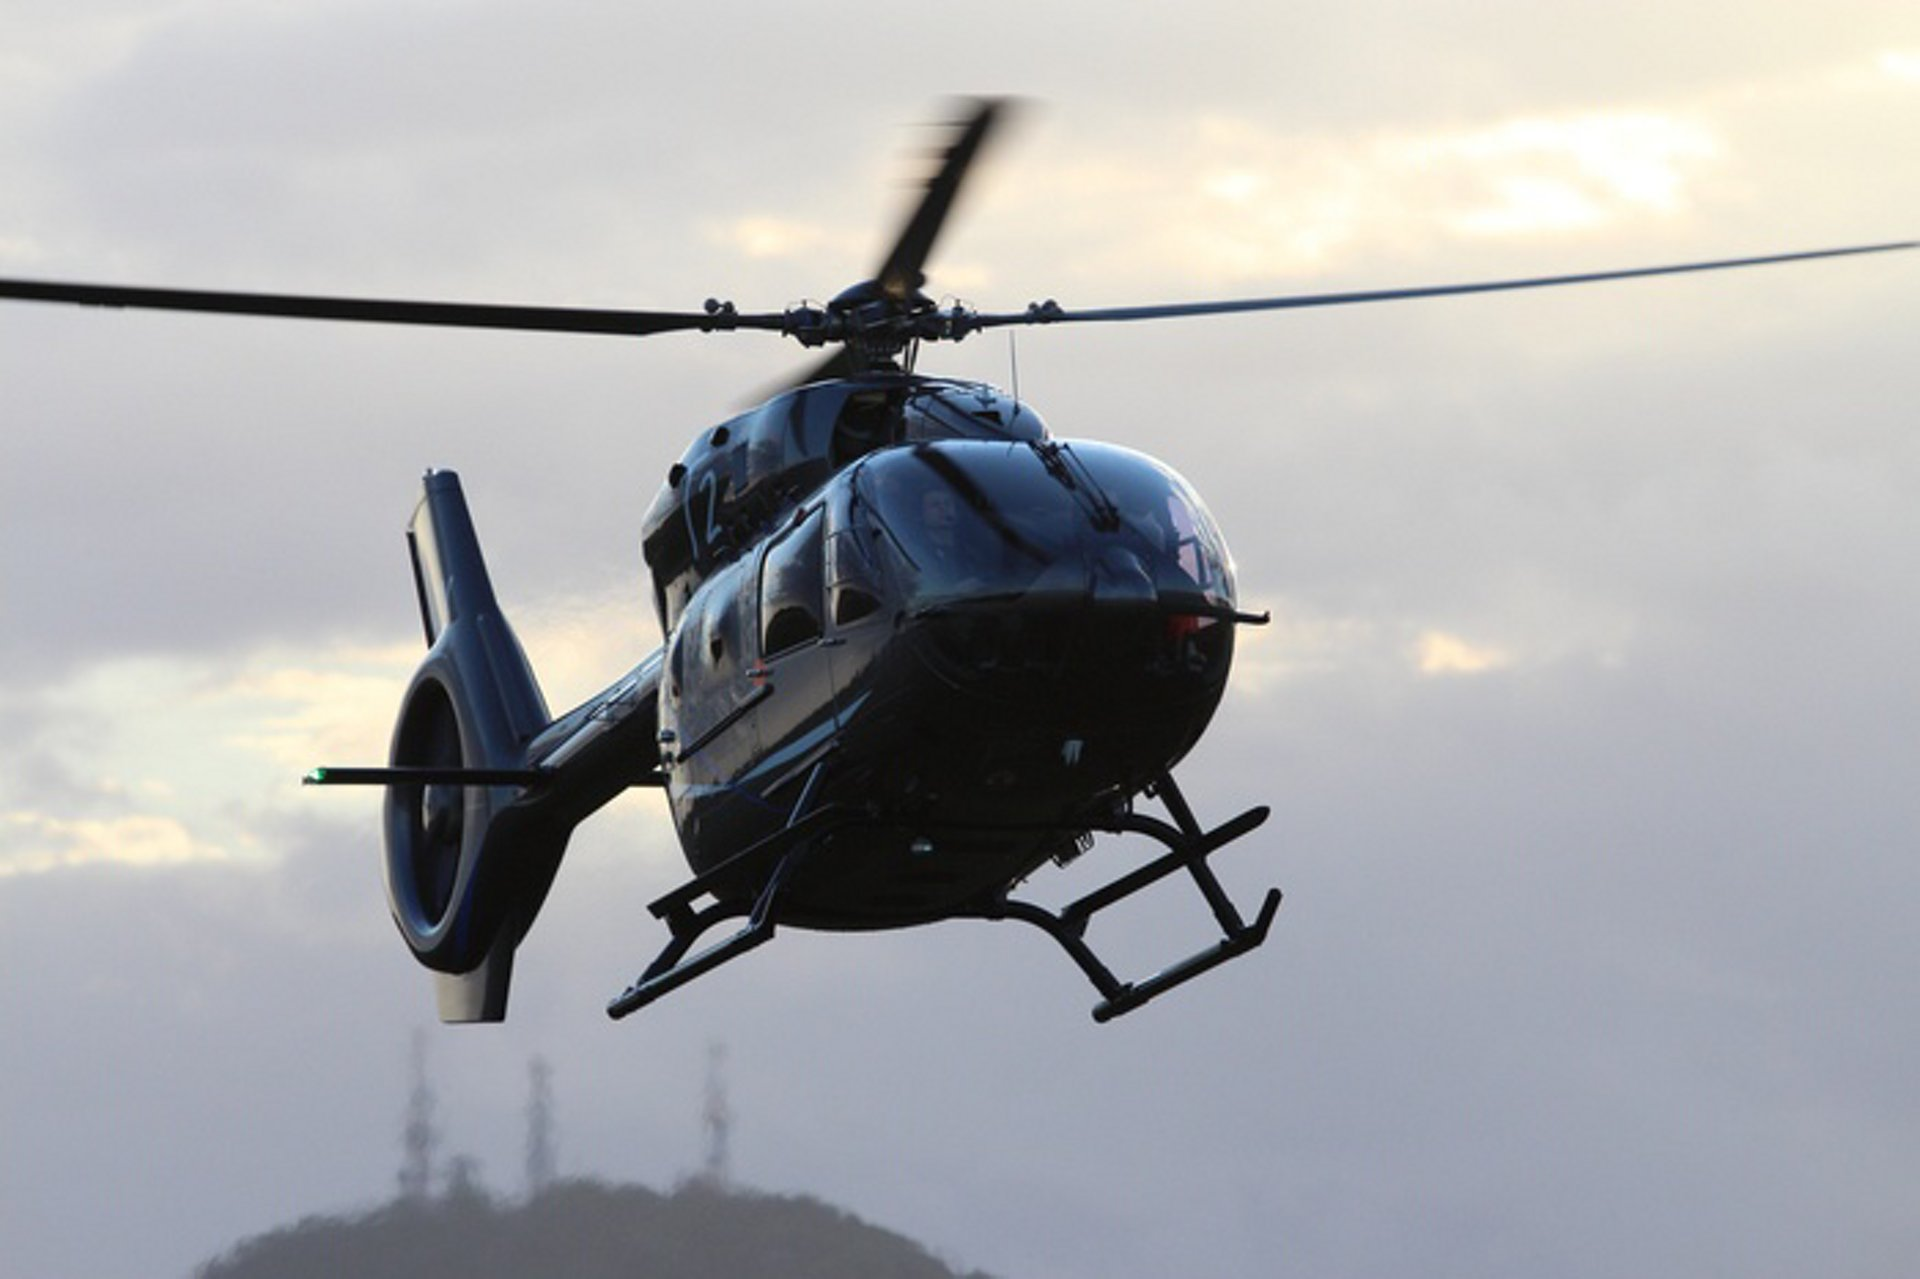 H145 concludes two-month Brazil demo tour